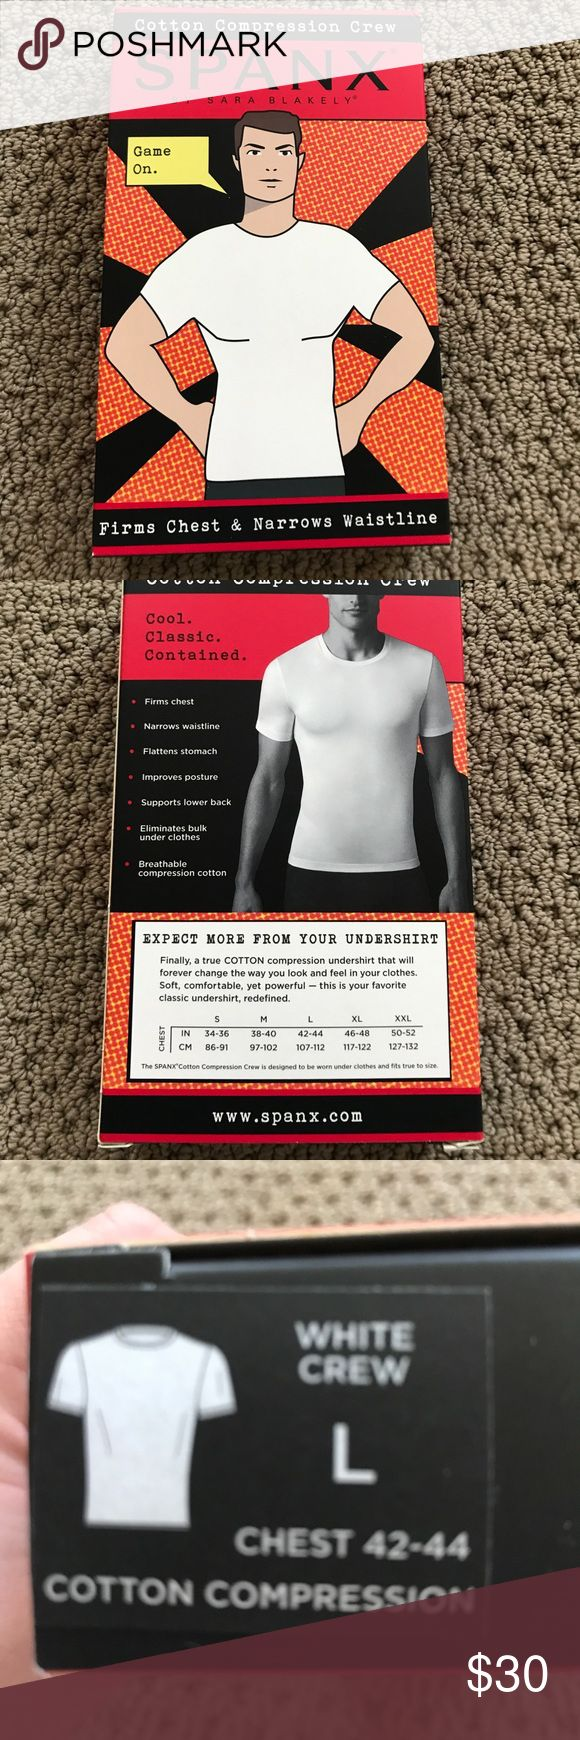 Men spanx undershirts never worn White spanx undershirt. 81% cotton 19% spandex SPANX Underwear & Socks Undershirts